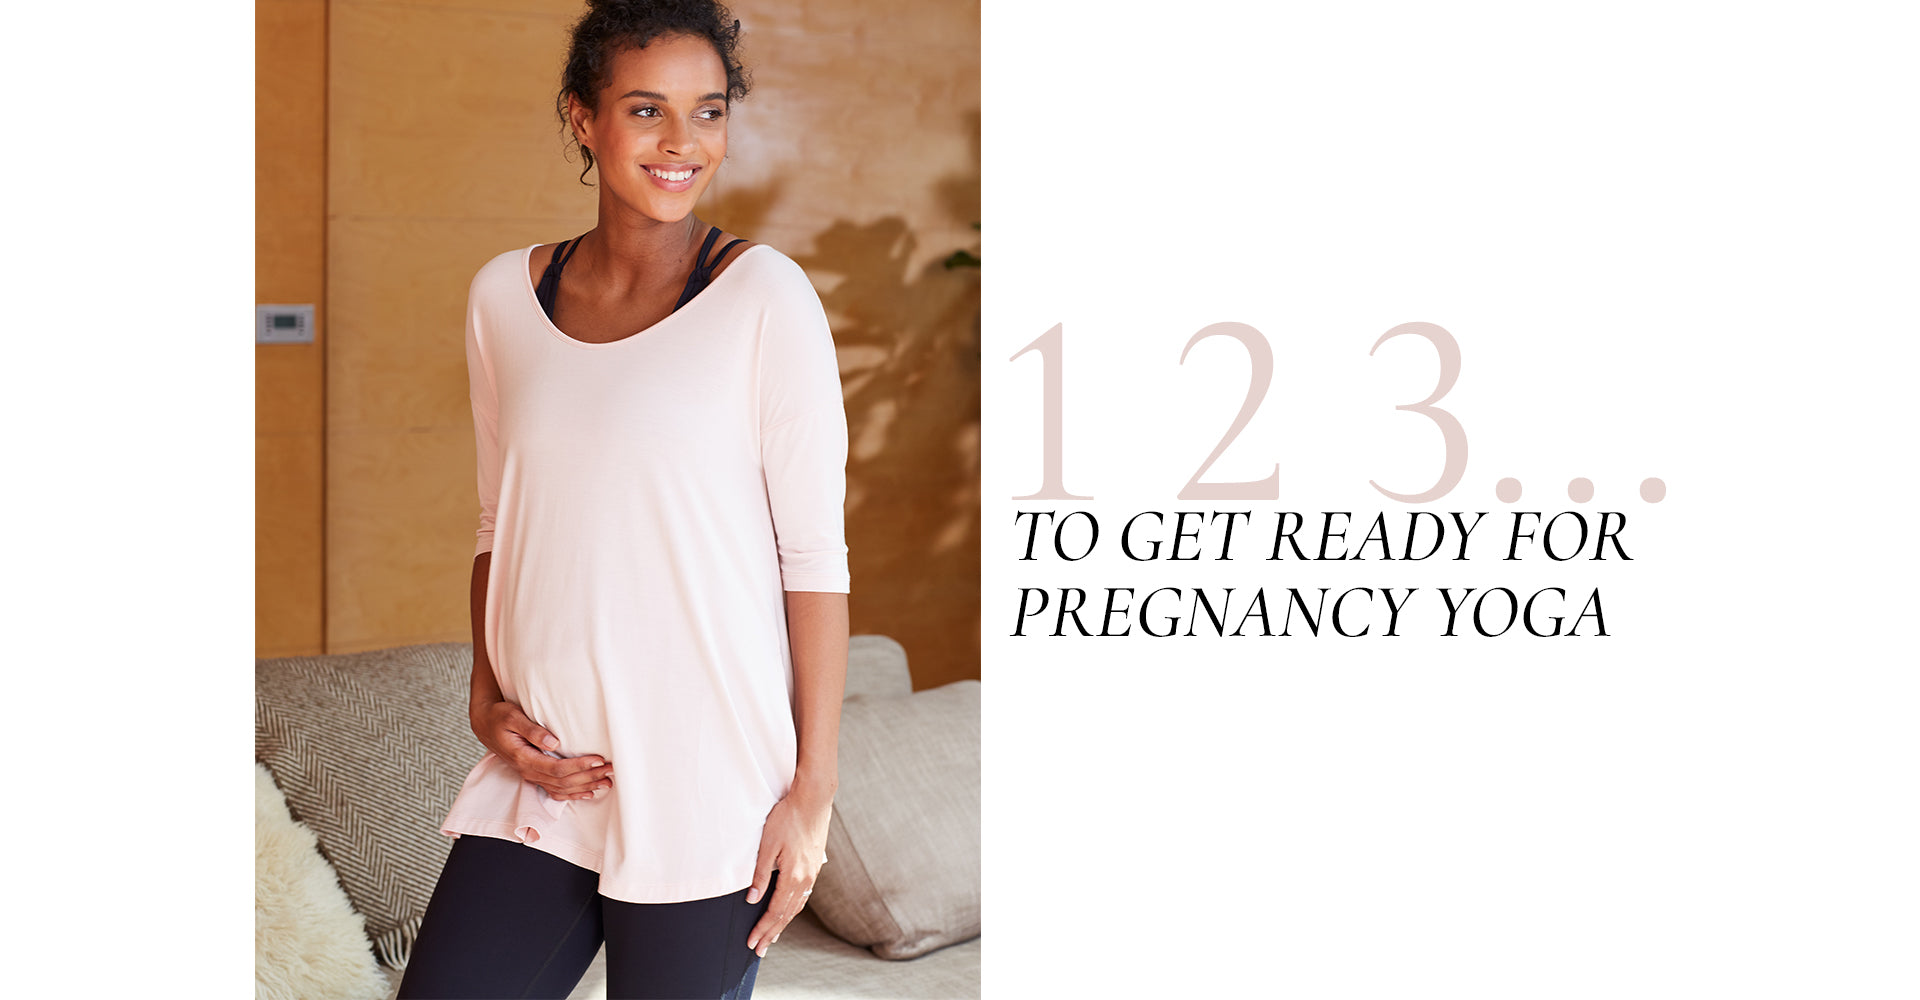 123 to get ready for pregnancy yoga